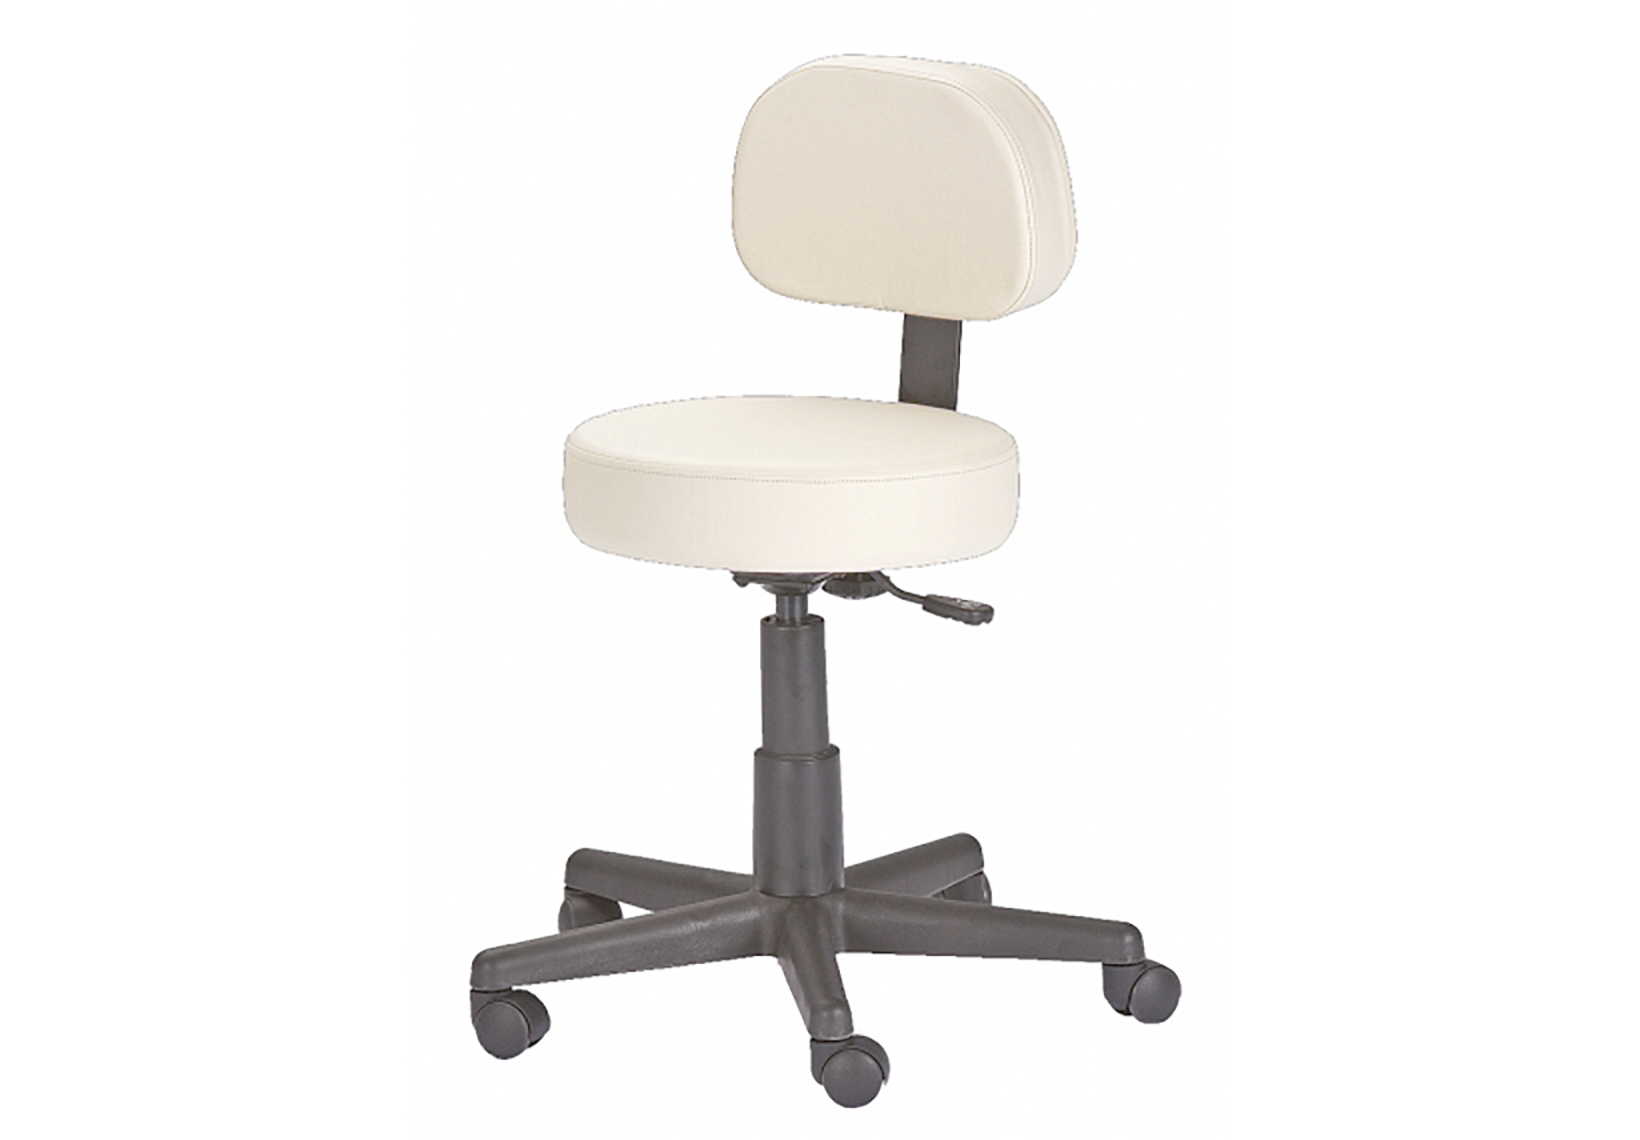 Stools Spa Vision Global Leading Spa Equipment Supplier